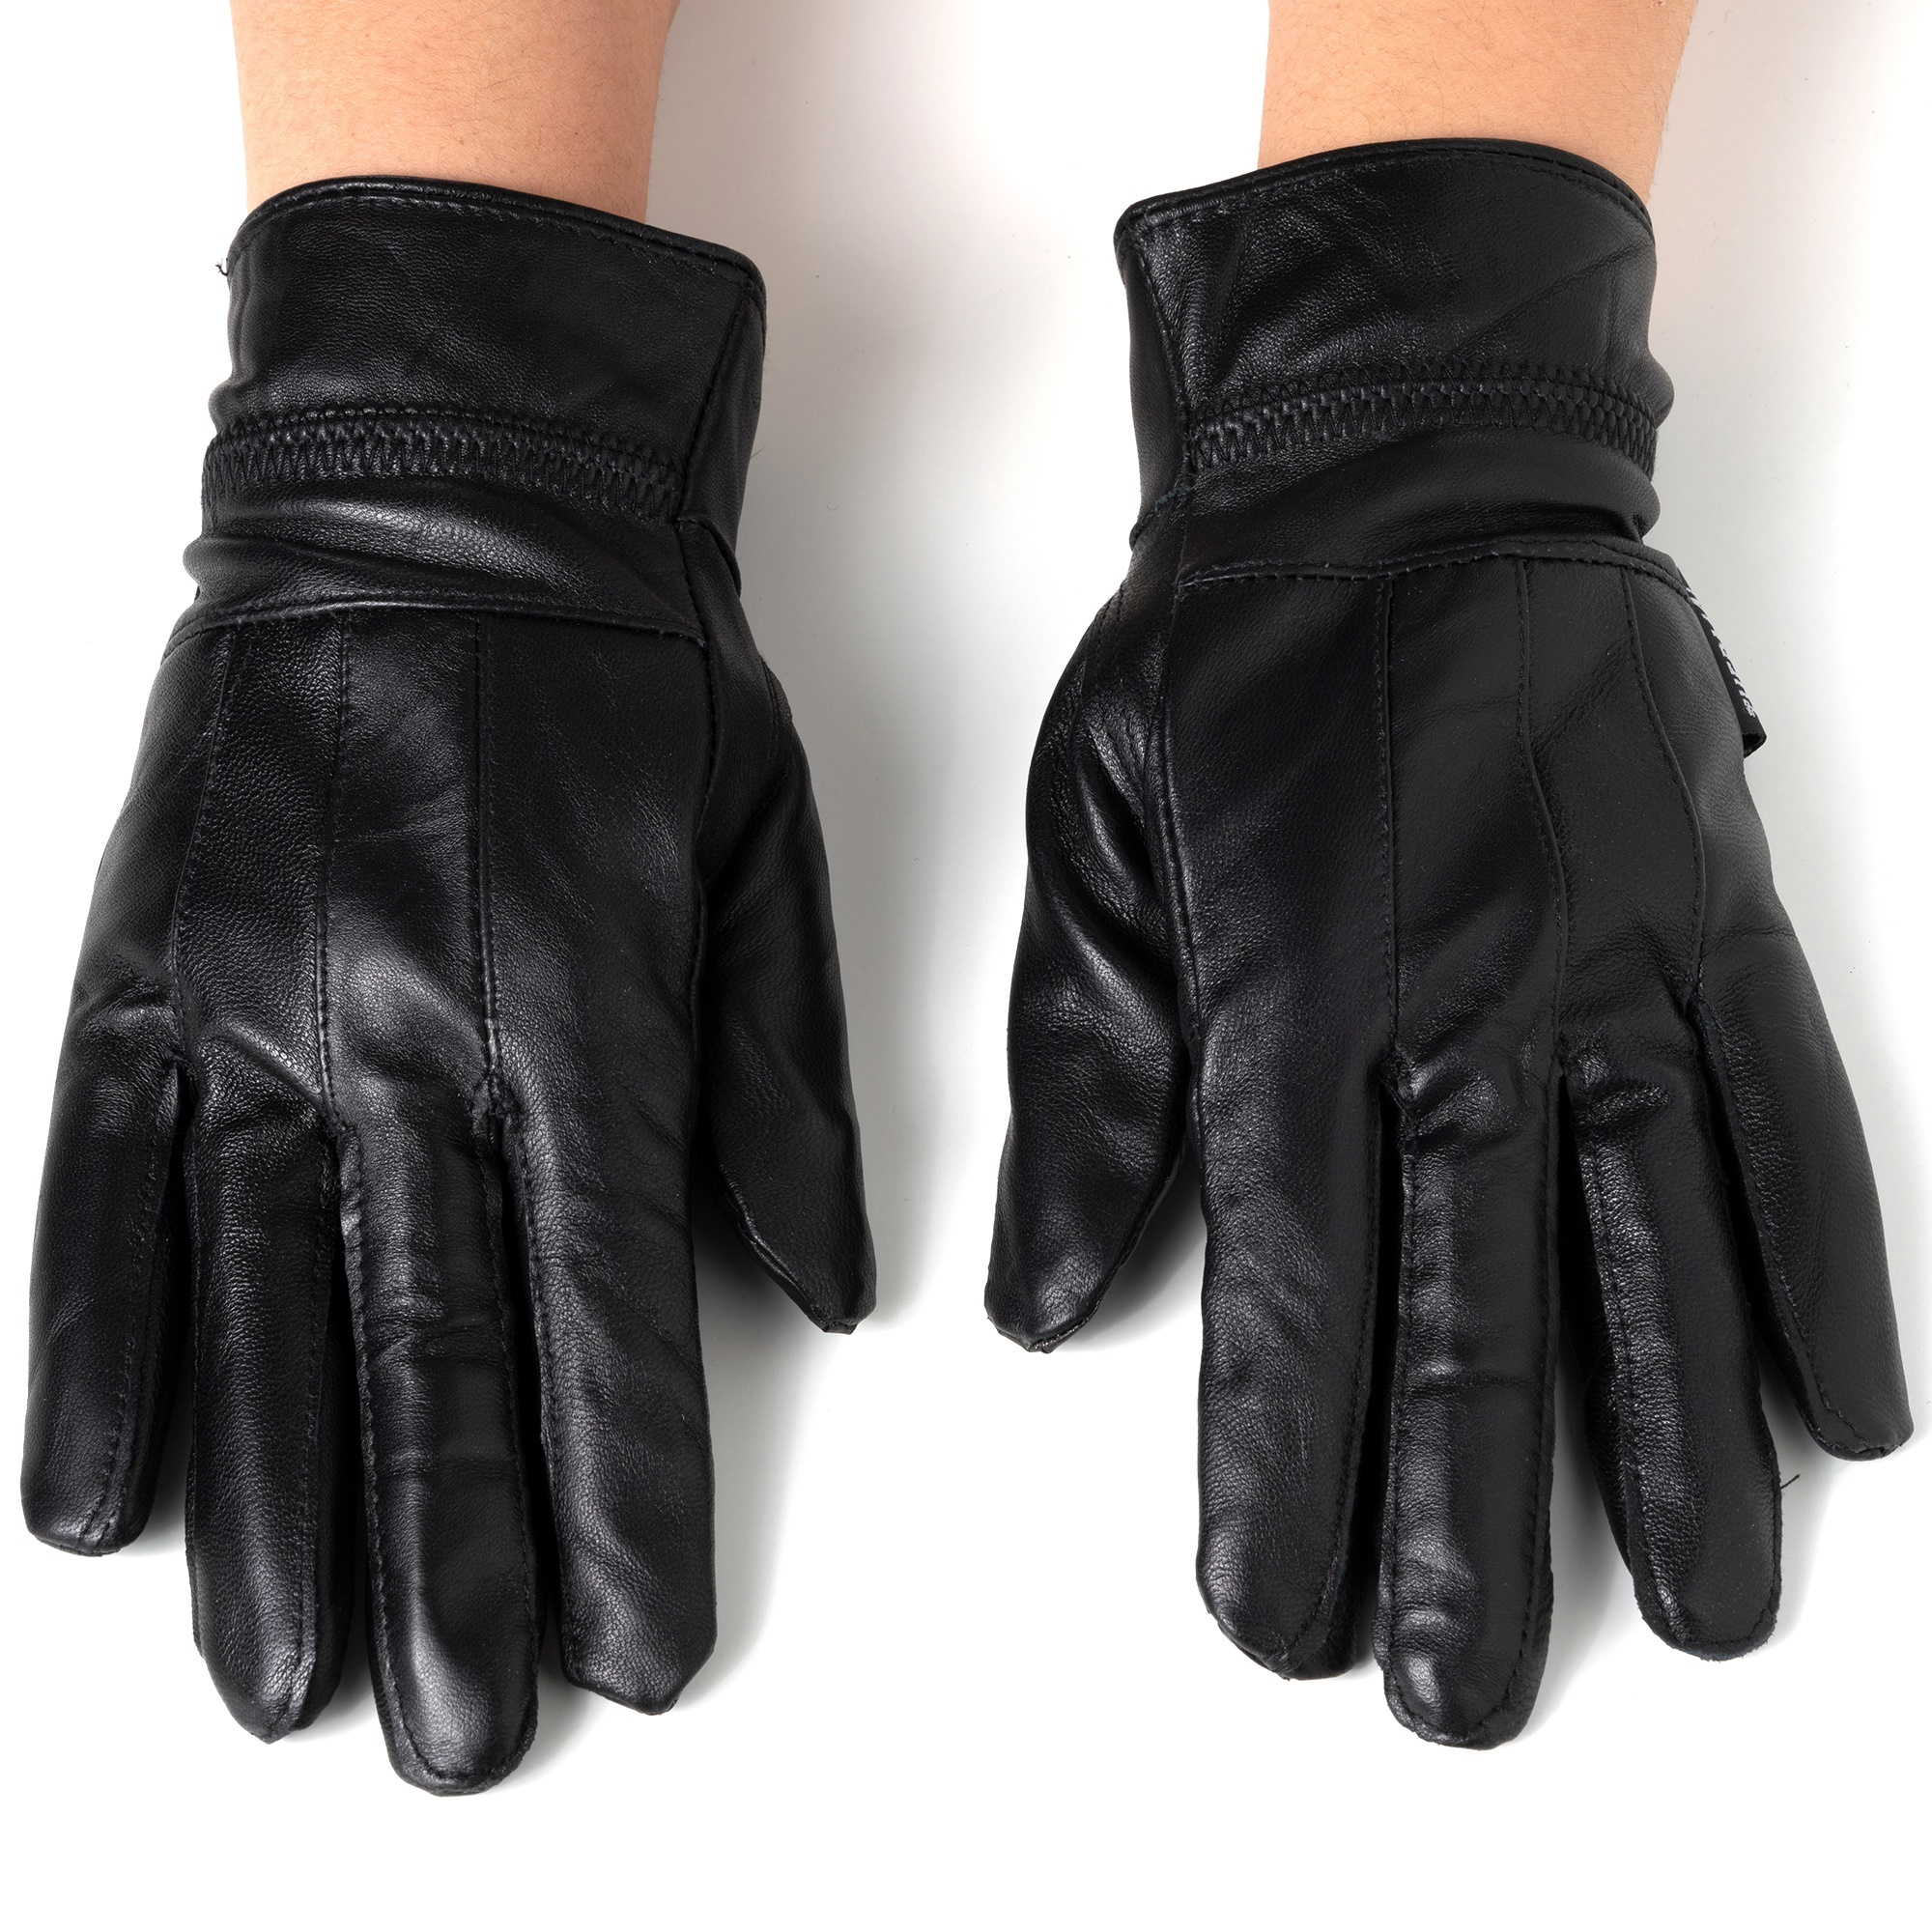 Alpine-Swiss-Womens-Touch-Screen-Gloves-Leather-Phone-Texting-Glove-Thermal-Warm thumbnail 15